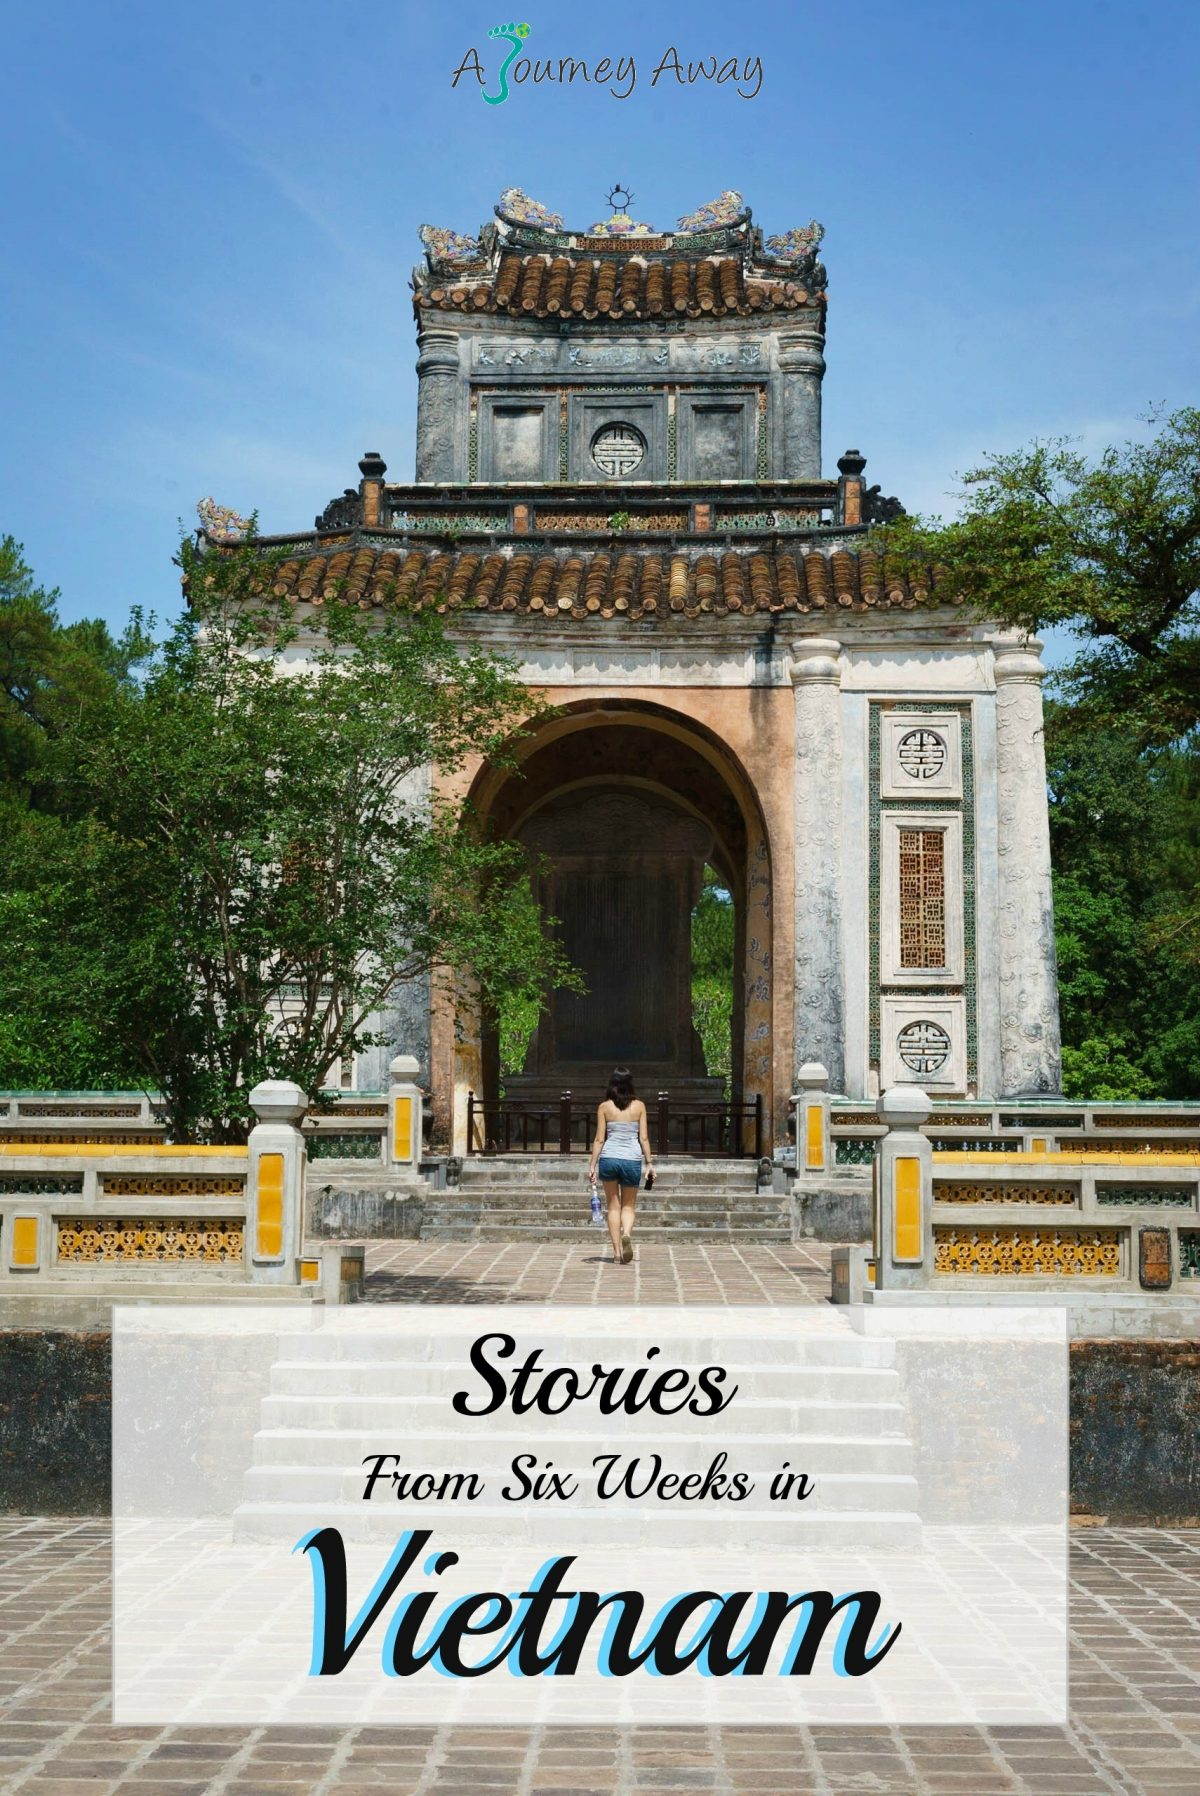 Stories from 6 weeks in Vietnam | A Journey Away travel blog